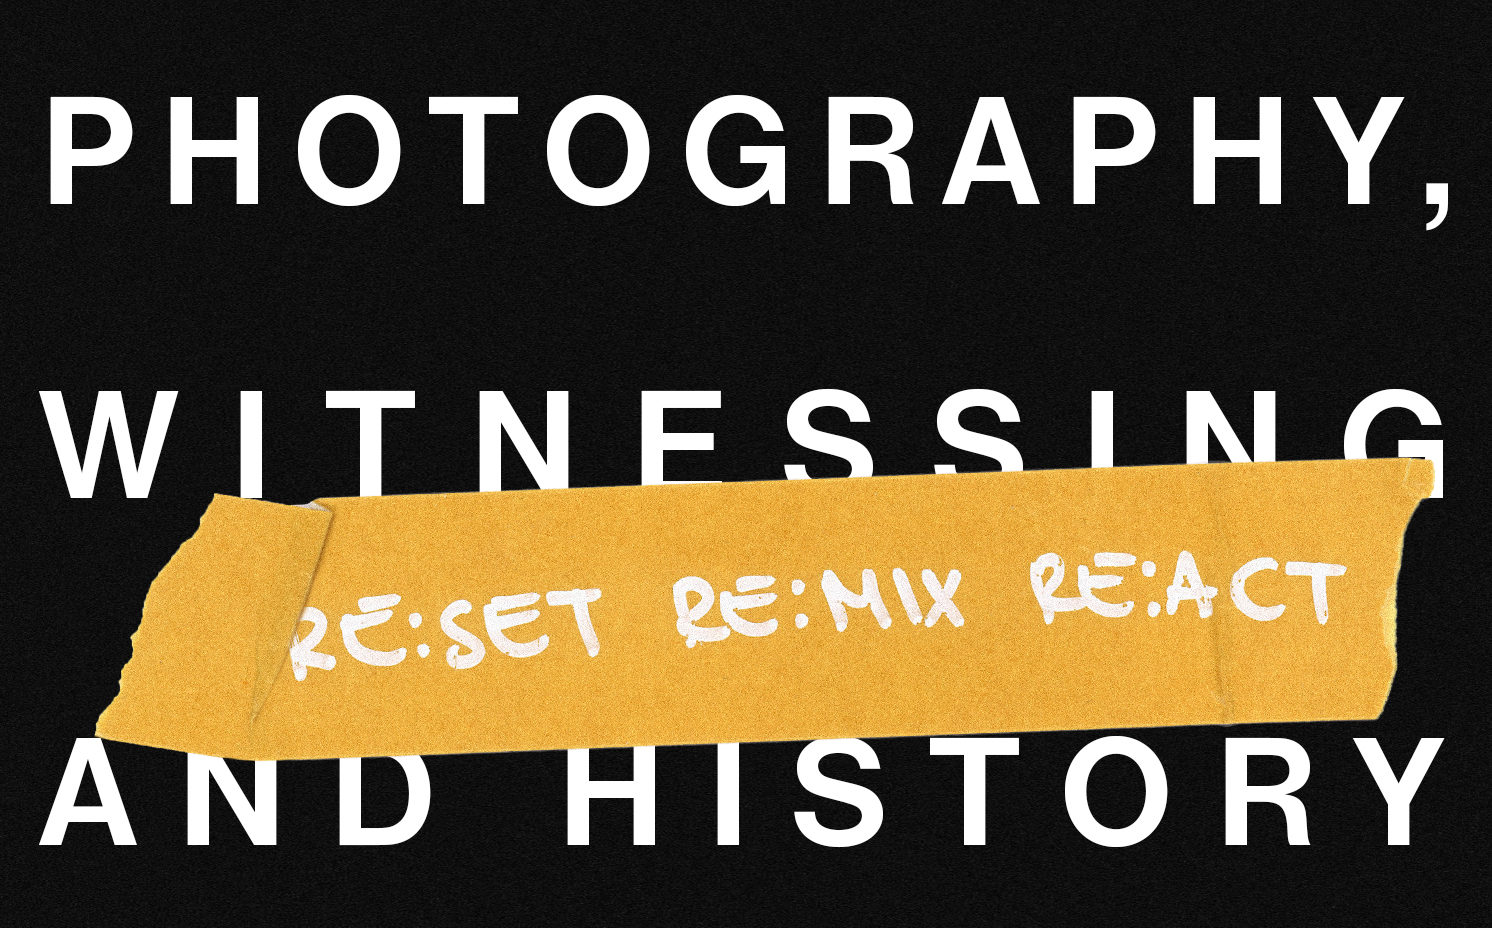 PHOTOGRAPHY, WITNESSING AND HISTORY BY PAUL LOWE